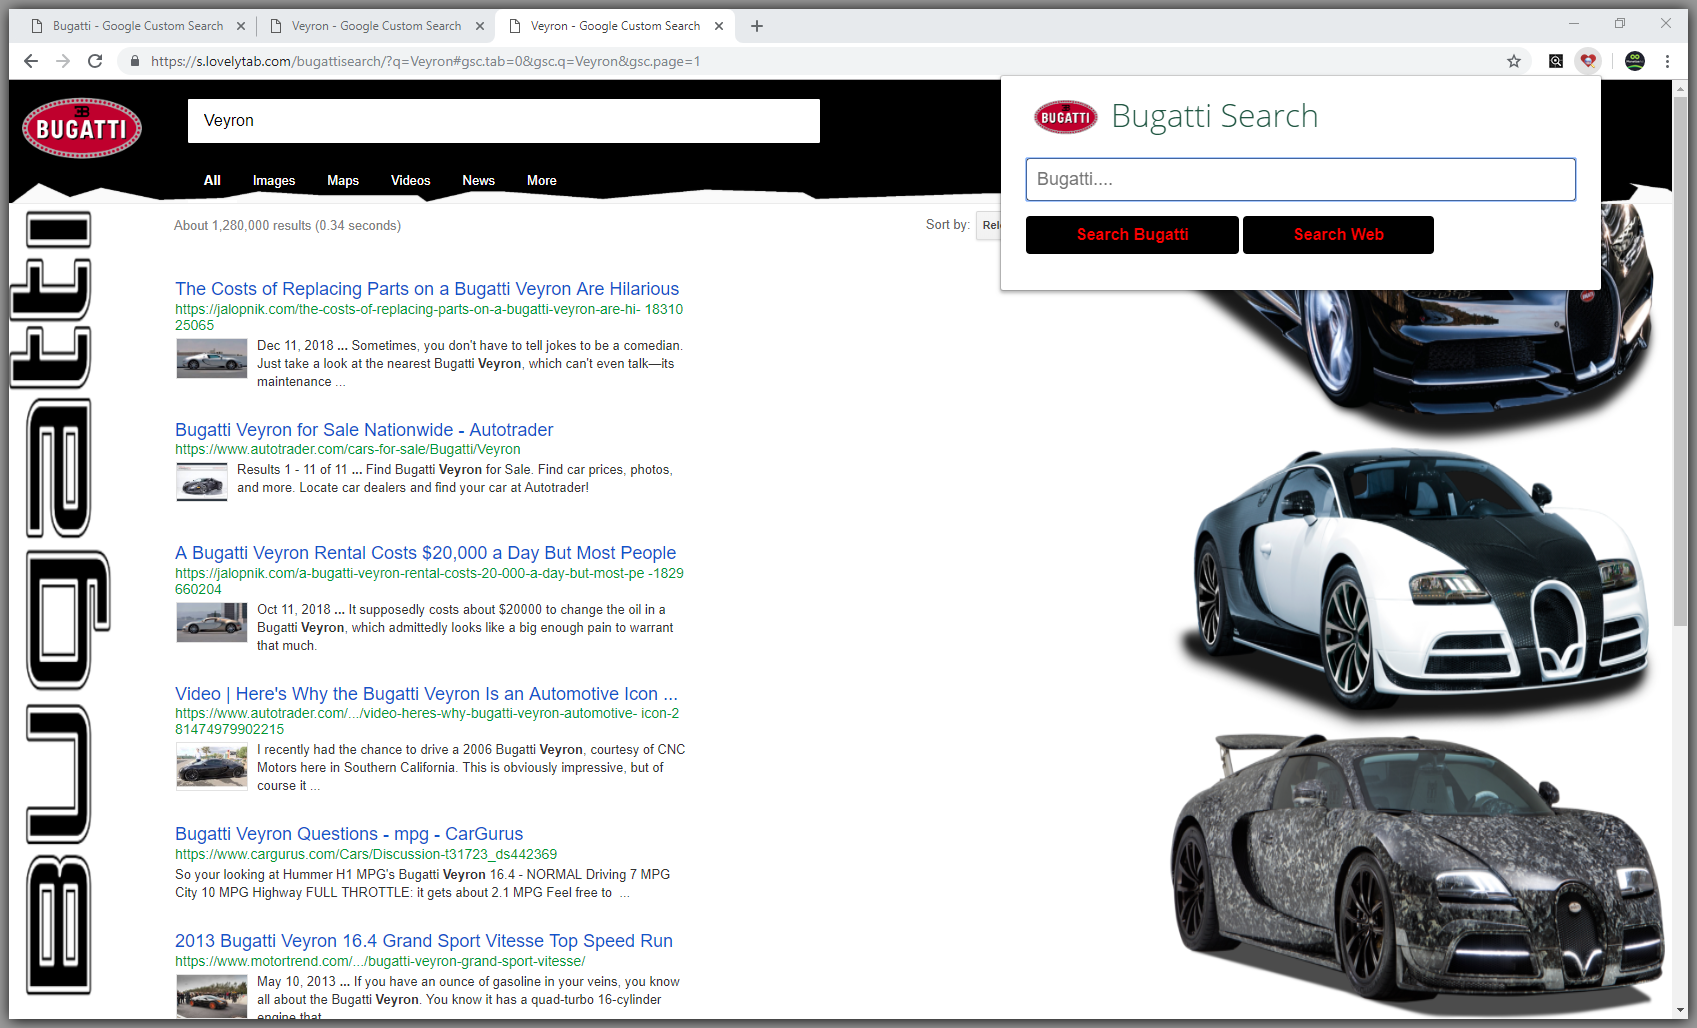 Bugatti Search Screenshot